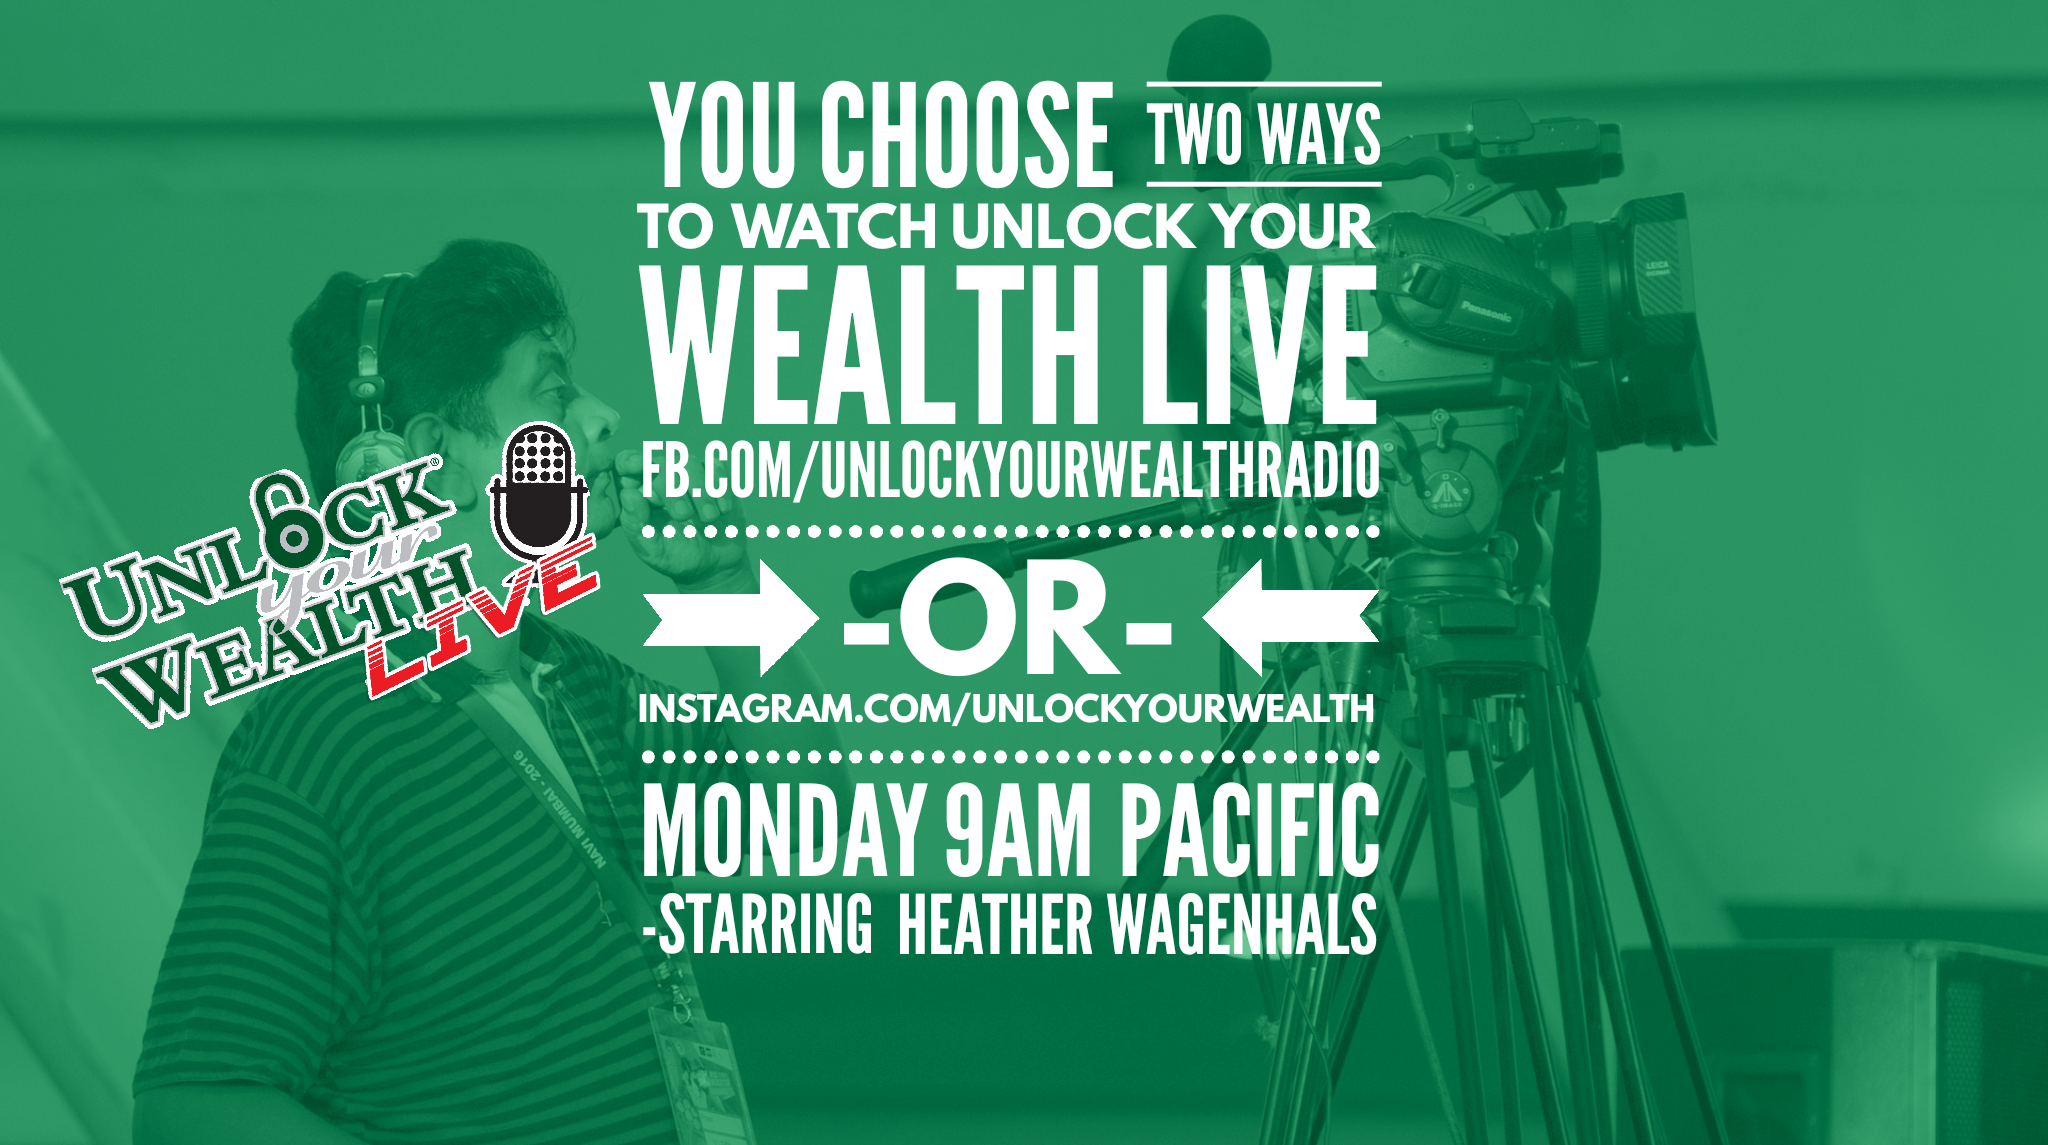 Unlock Your Wealth LIVE TV on Facebook and Instagram LIVE